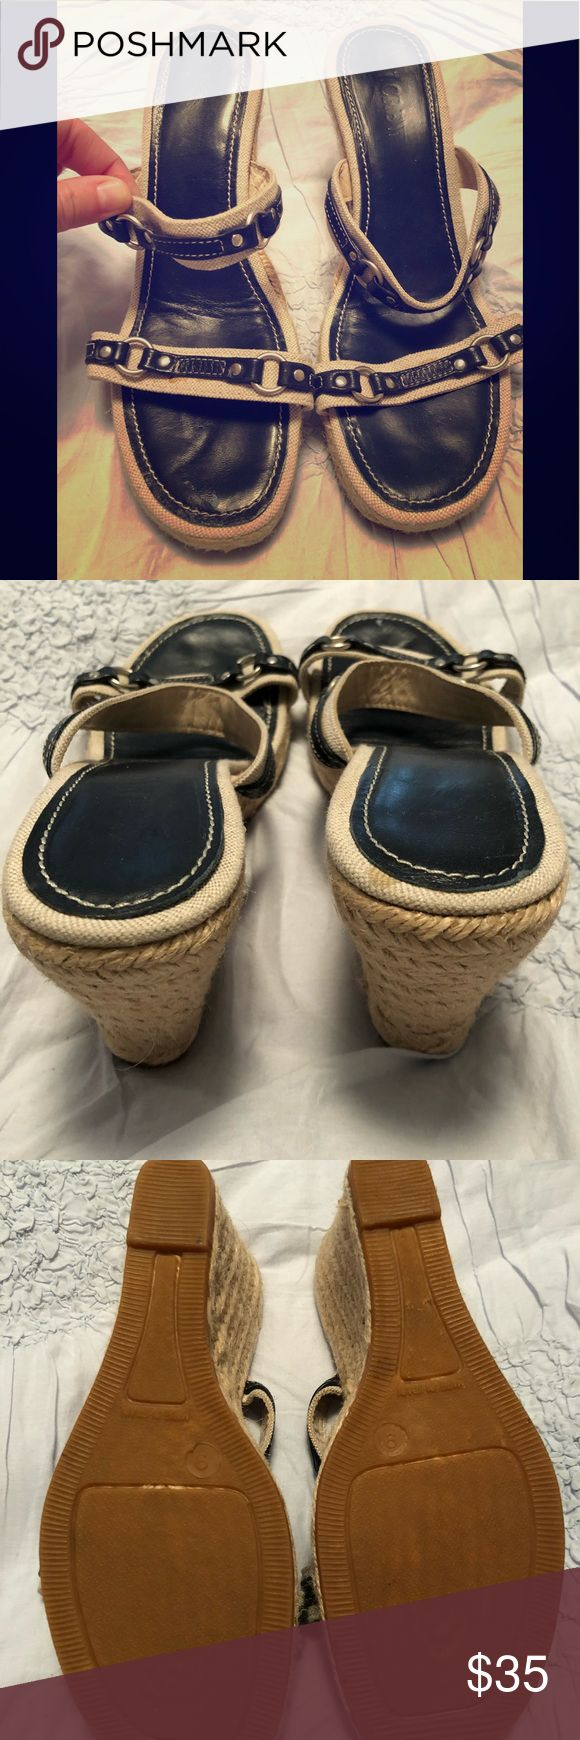 JCrew Navy Espadrille Wedge Size 9 JCrew Espadrille Wedge in Navy. Excellent Condition. Heel is 3.5 in. Size 9. J. Crew Shoes Sandals